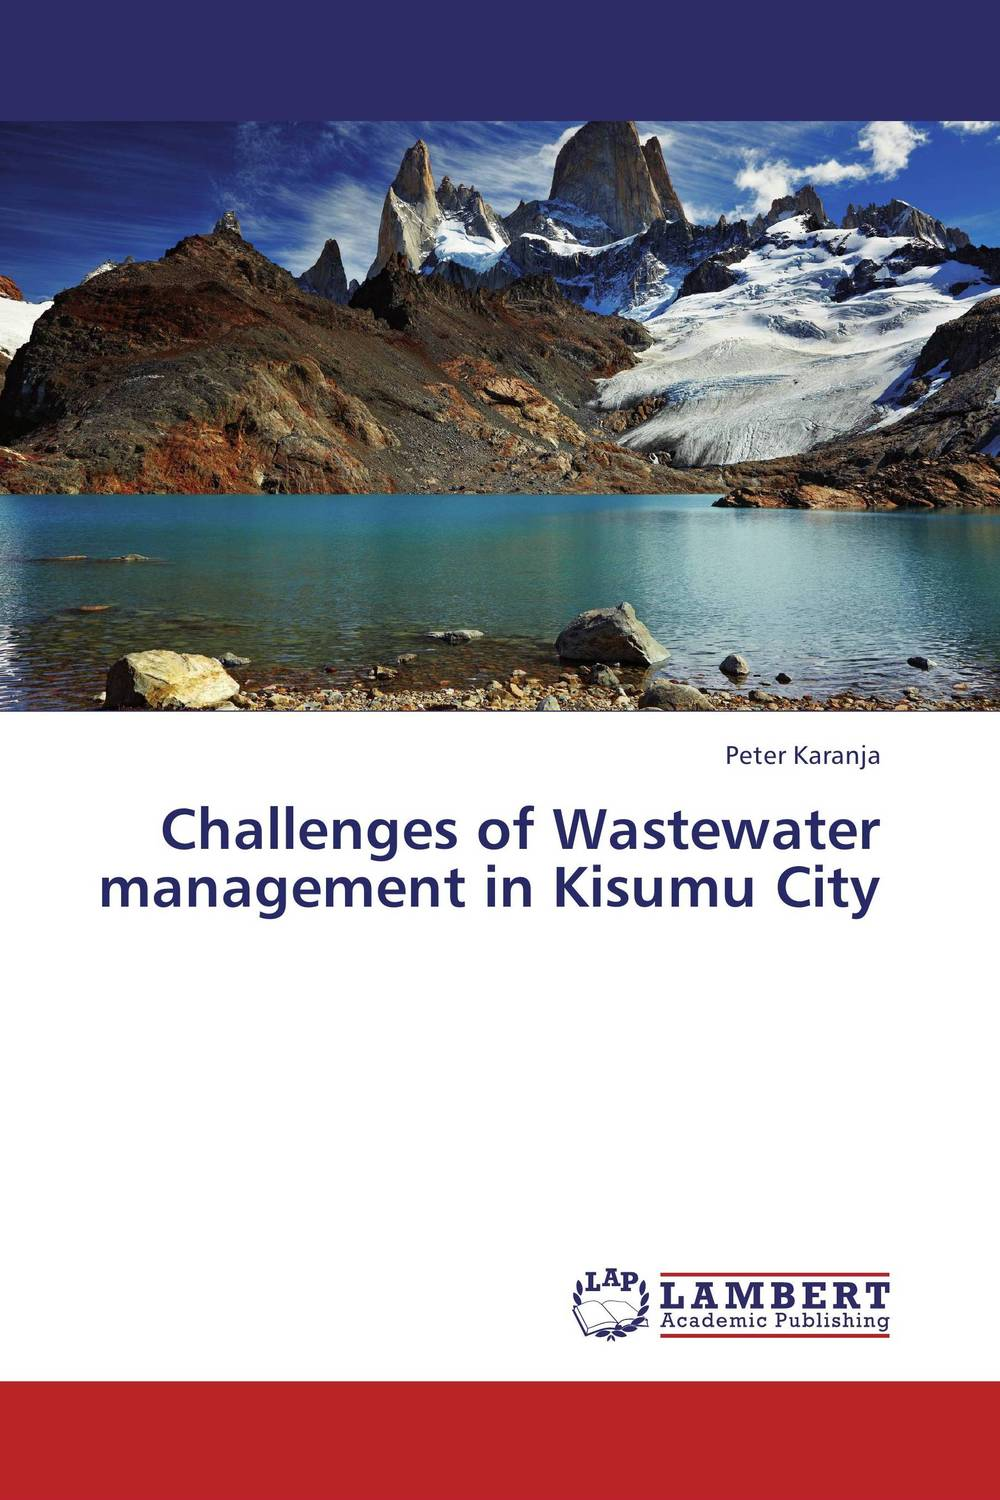 Challenges of Wastewater management in Kisumu City analayzing challenges of urban land management